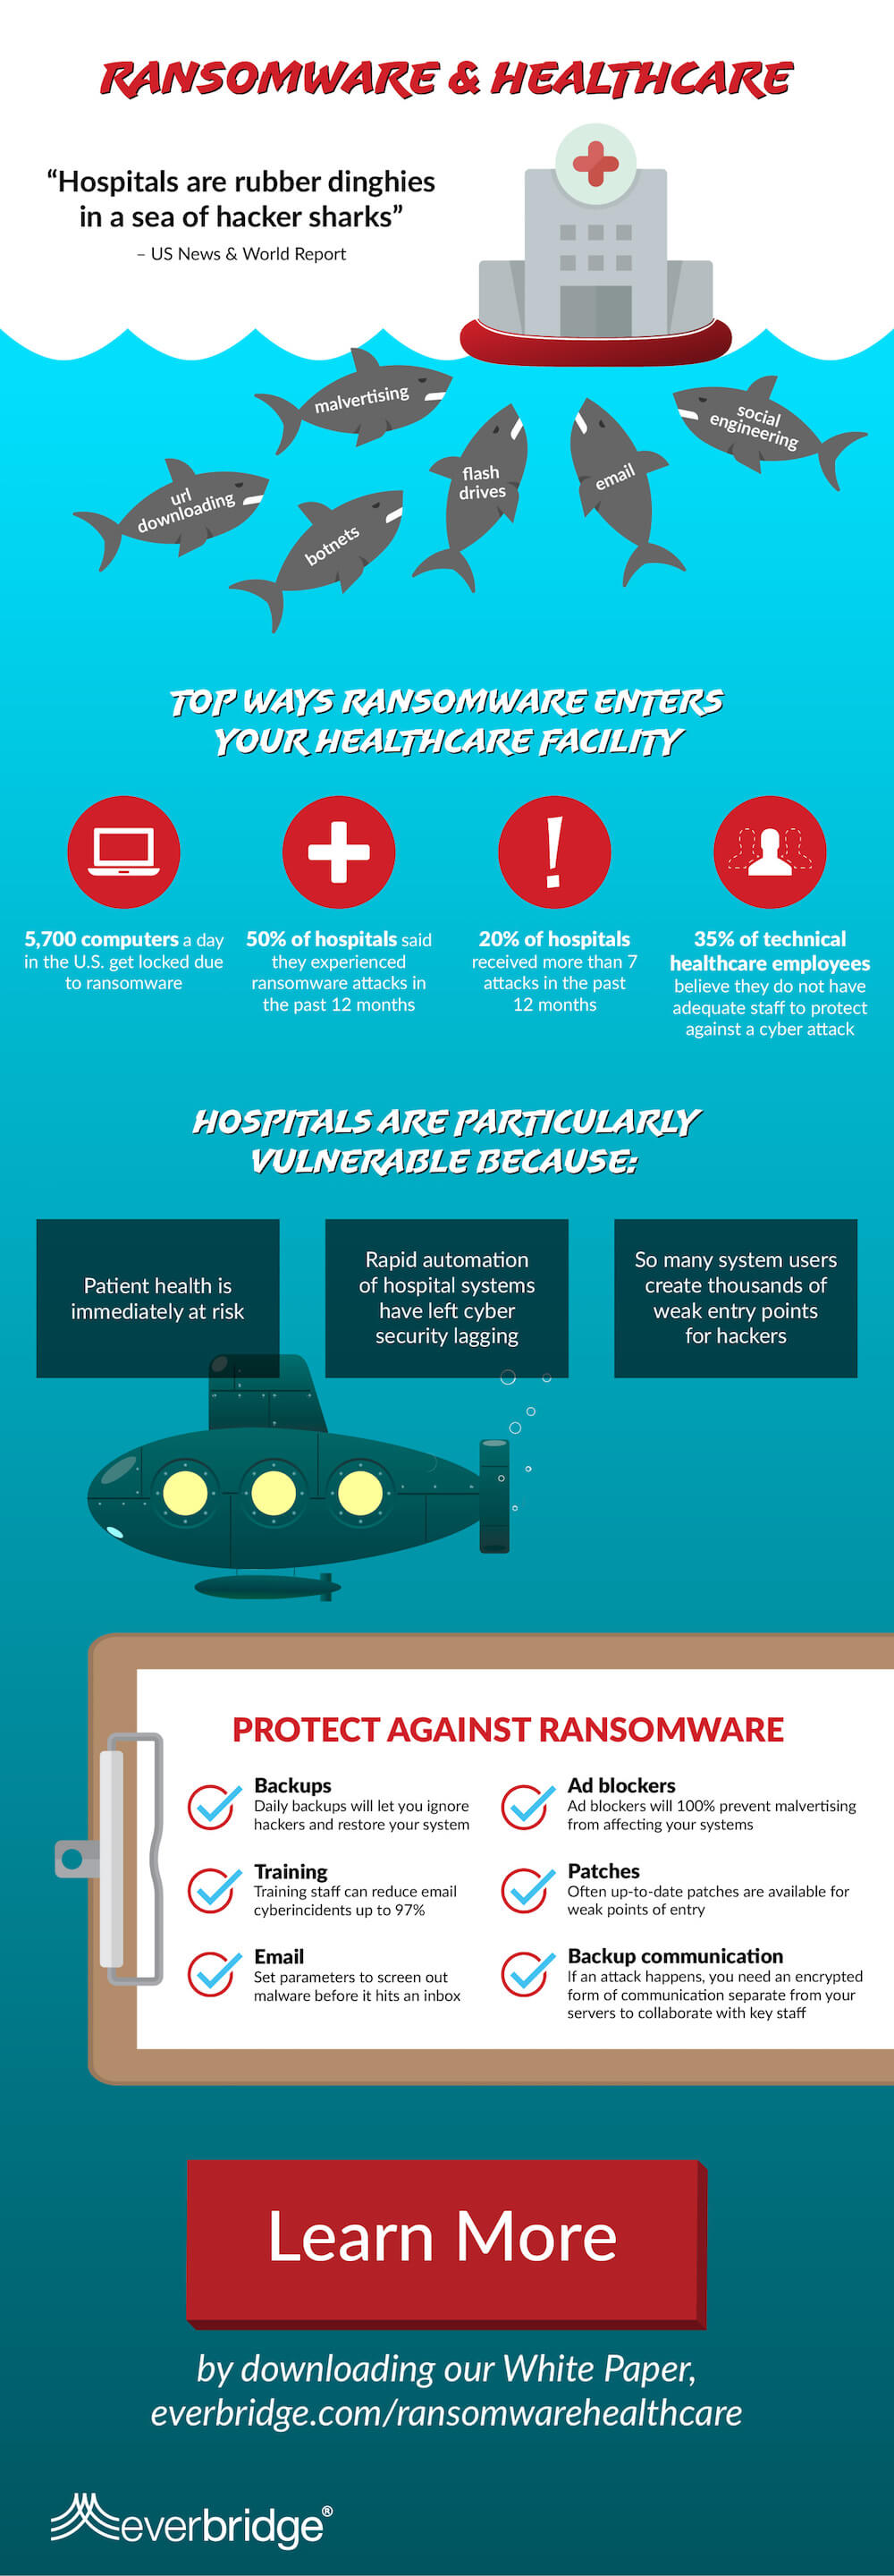 ransomware infographic, ransomware and healthcare